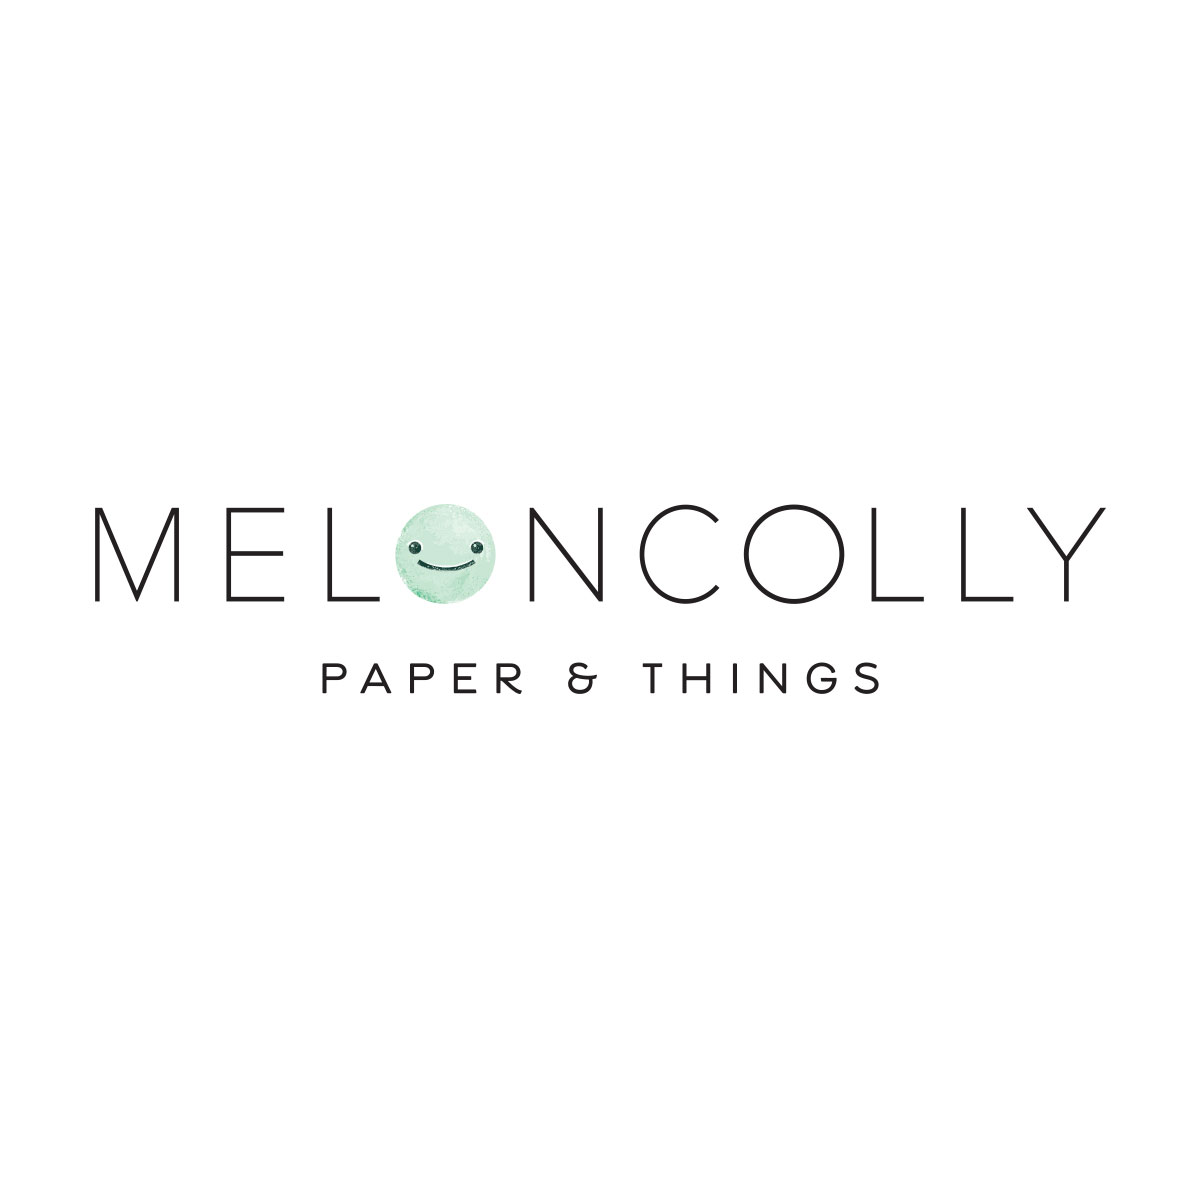 Meloncolly Paper & Things